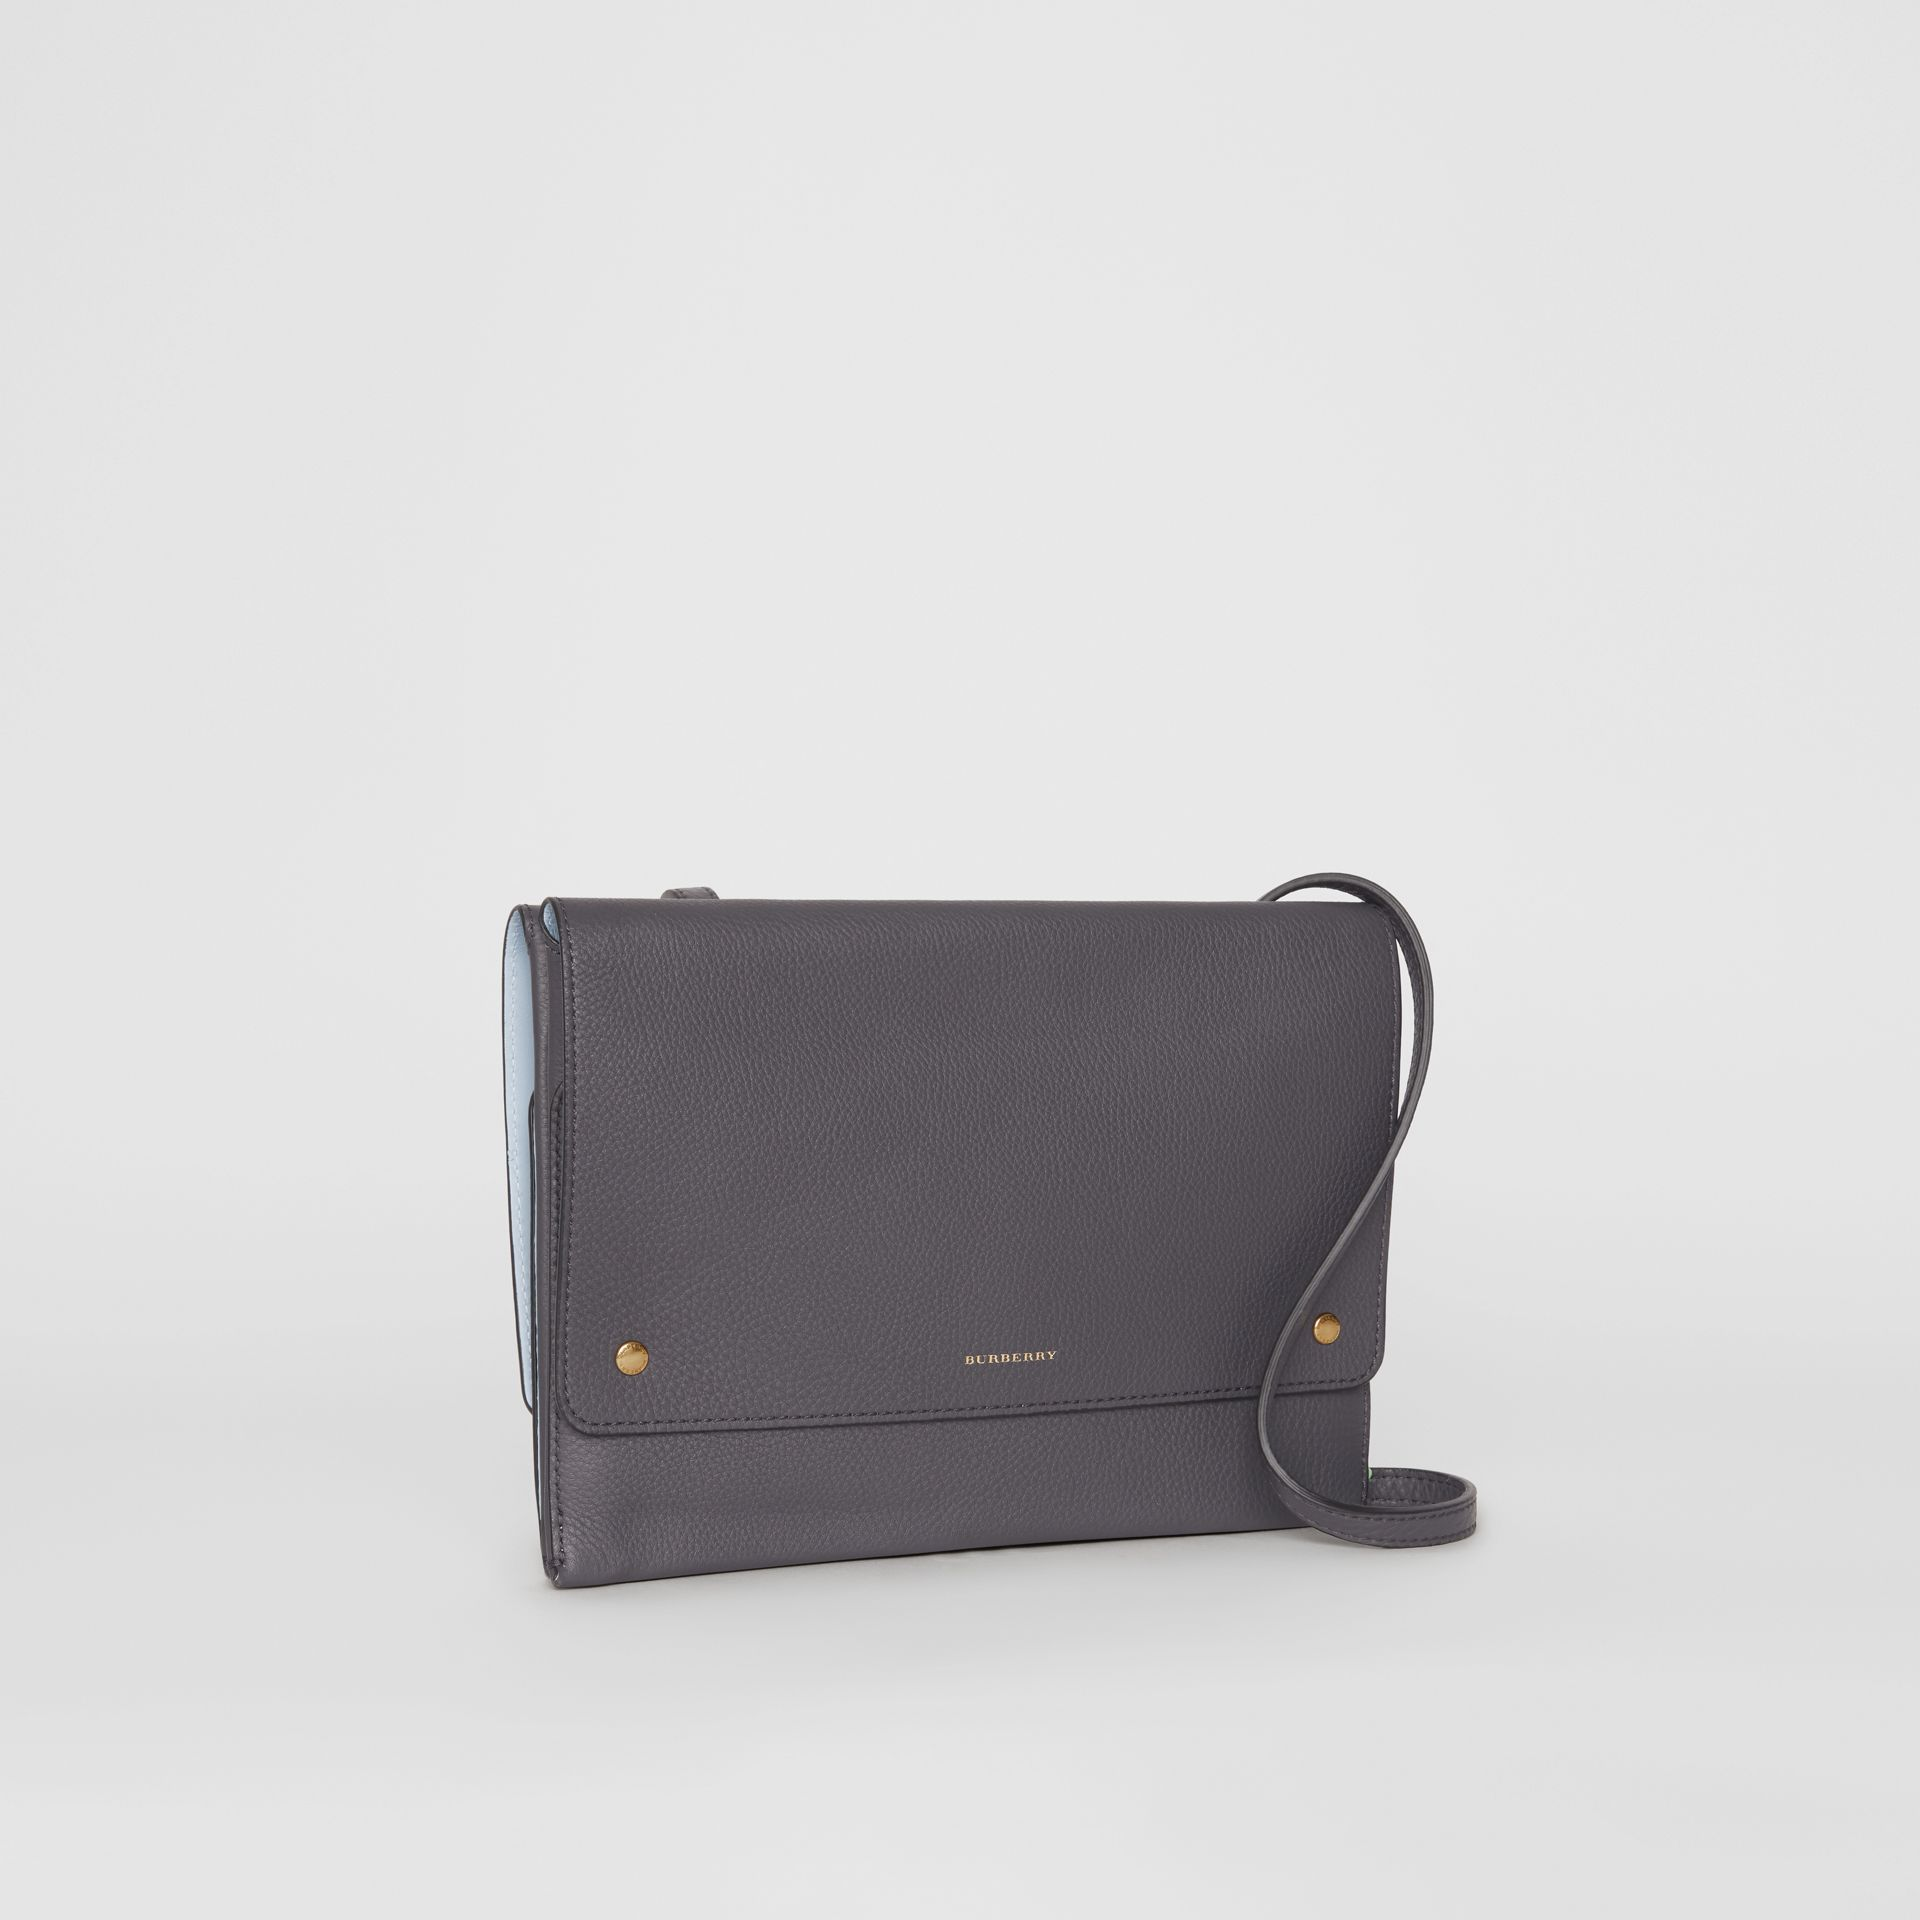 Leather Envelope Crossbody Bag in Charcoal Grey - Women | Burberry Canada - gallery image 4